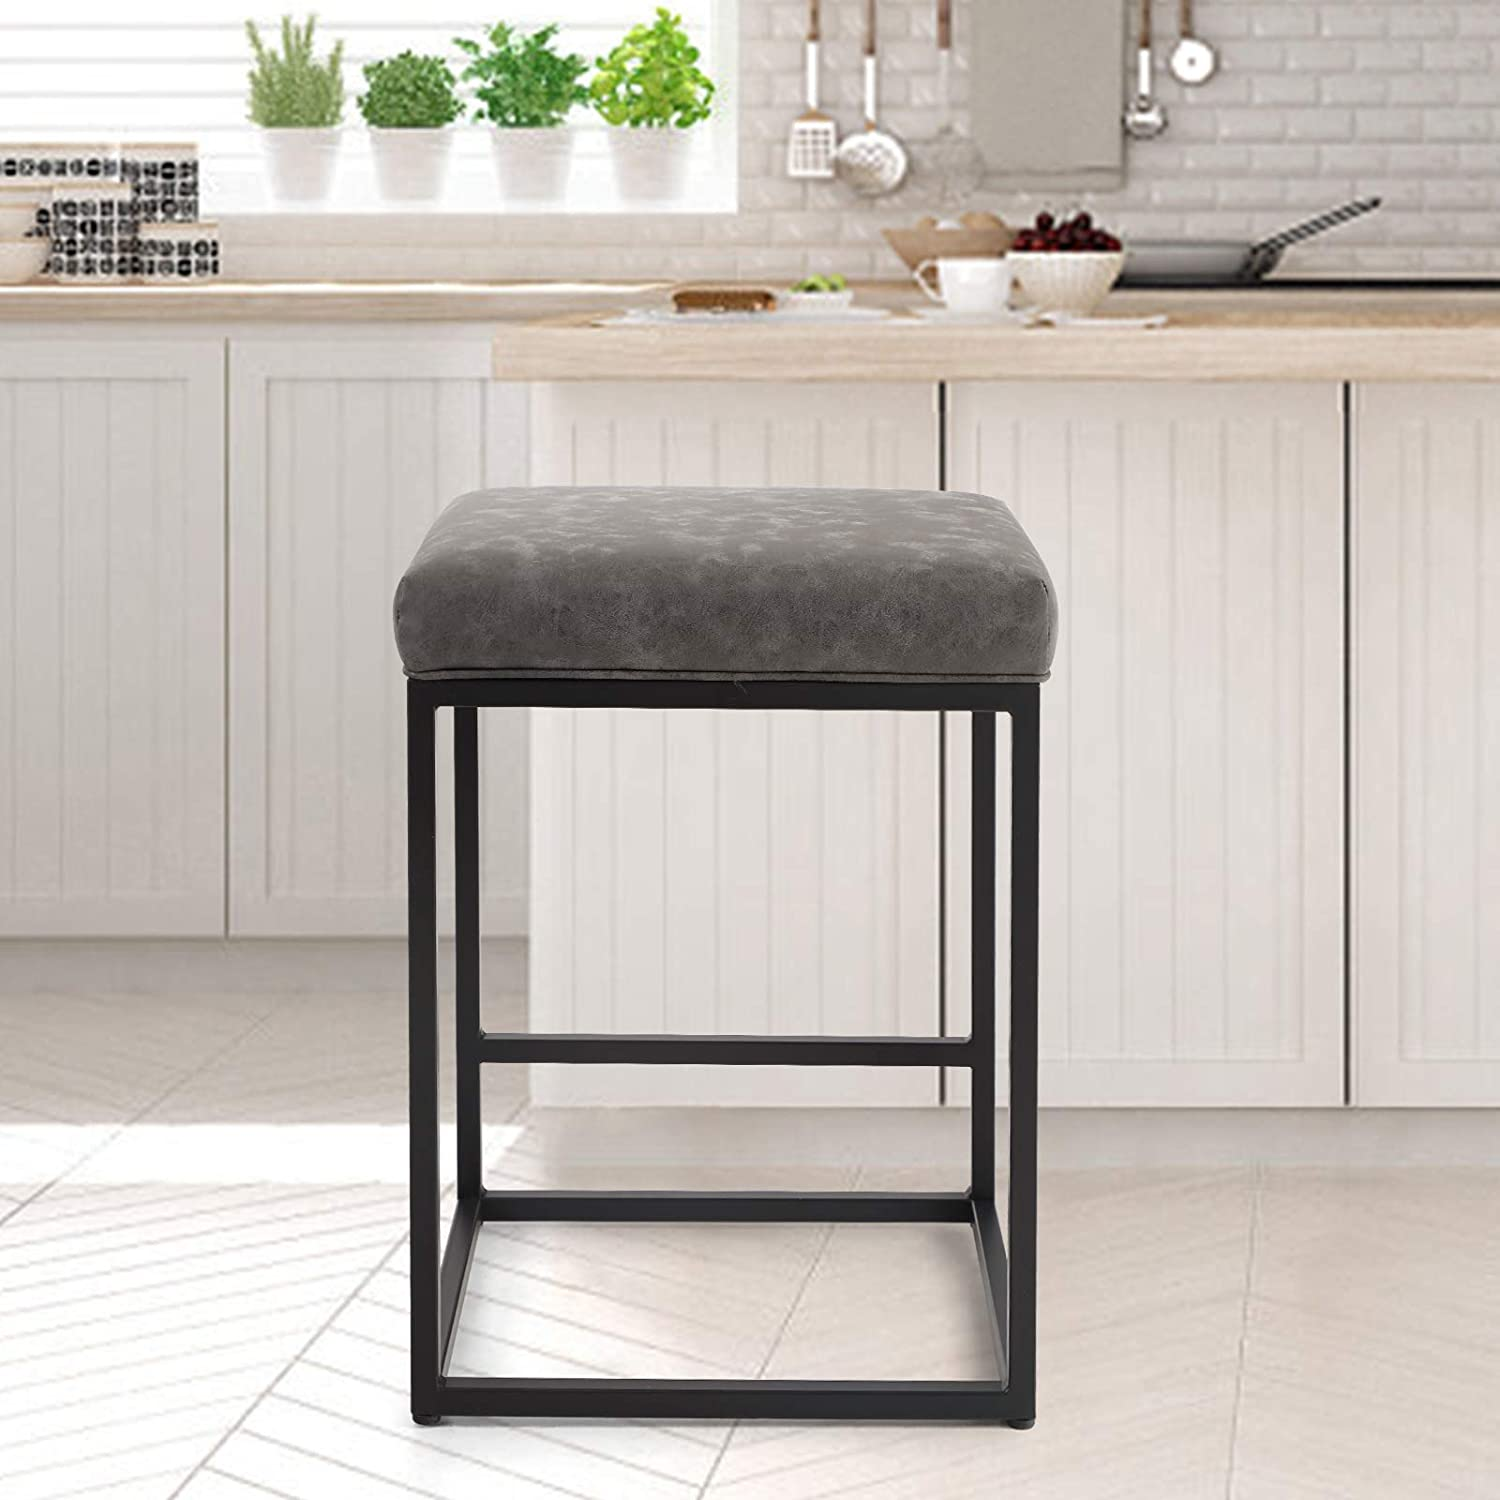 PHI San Jose Mall VILLA Bar Stools Counter 24 Height Inches National products Square Leather